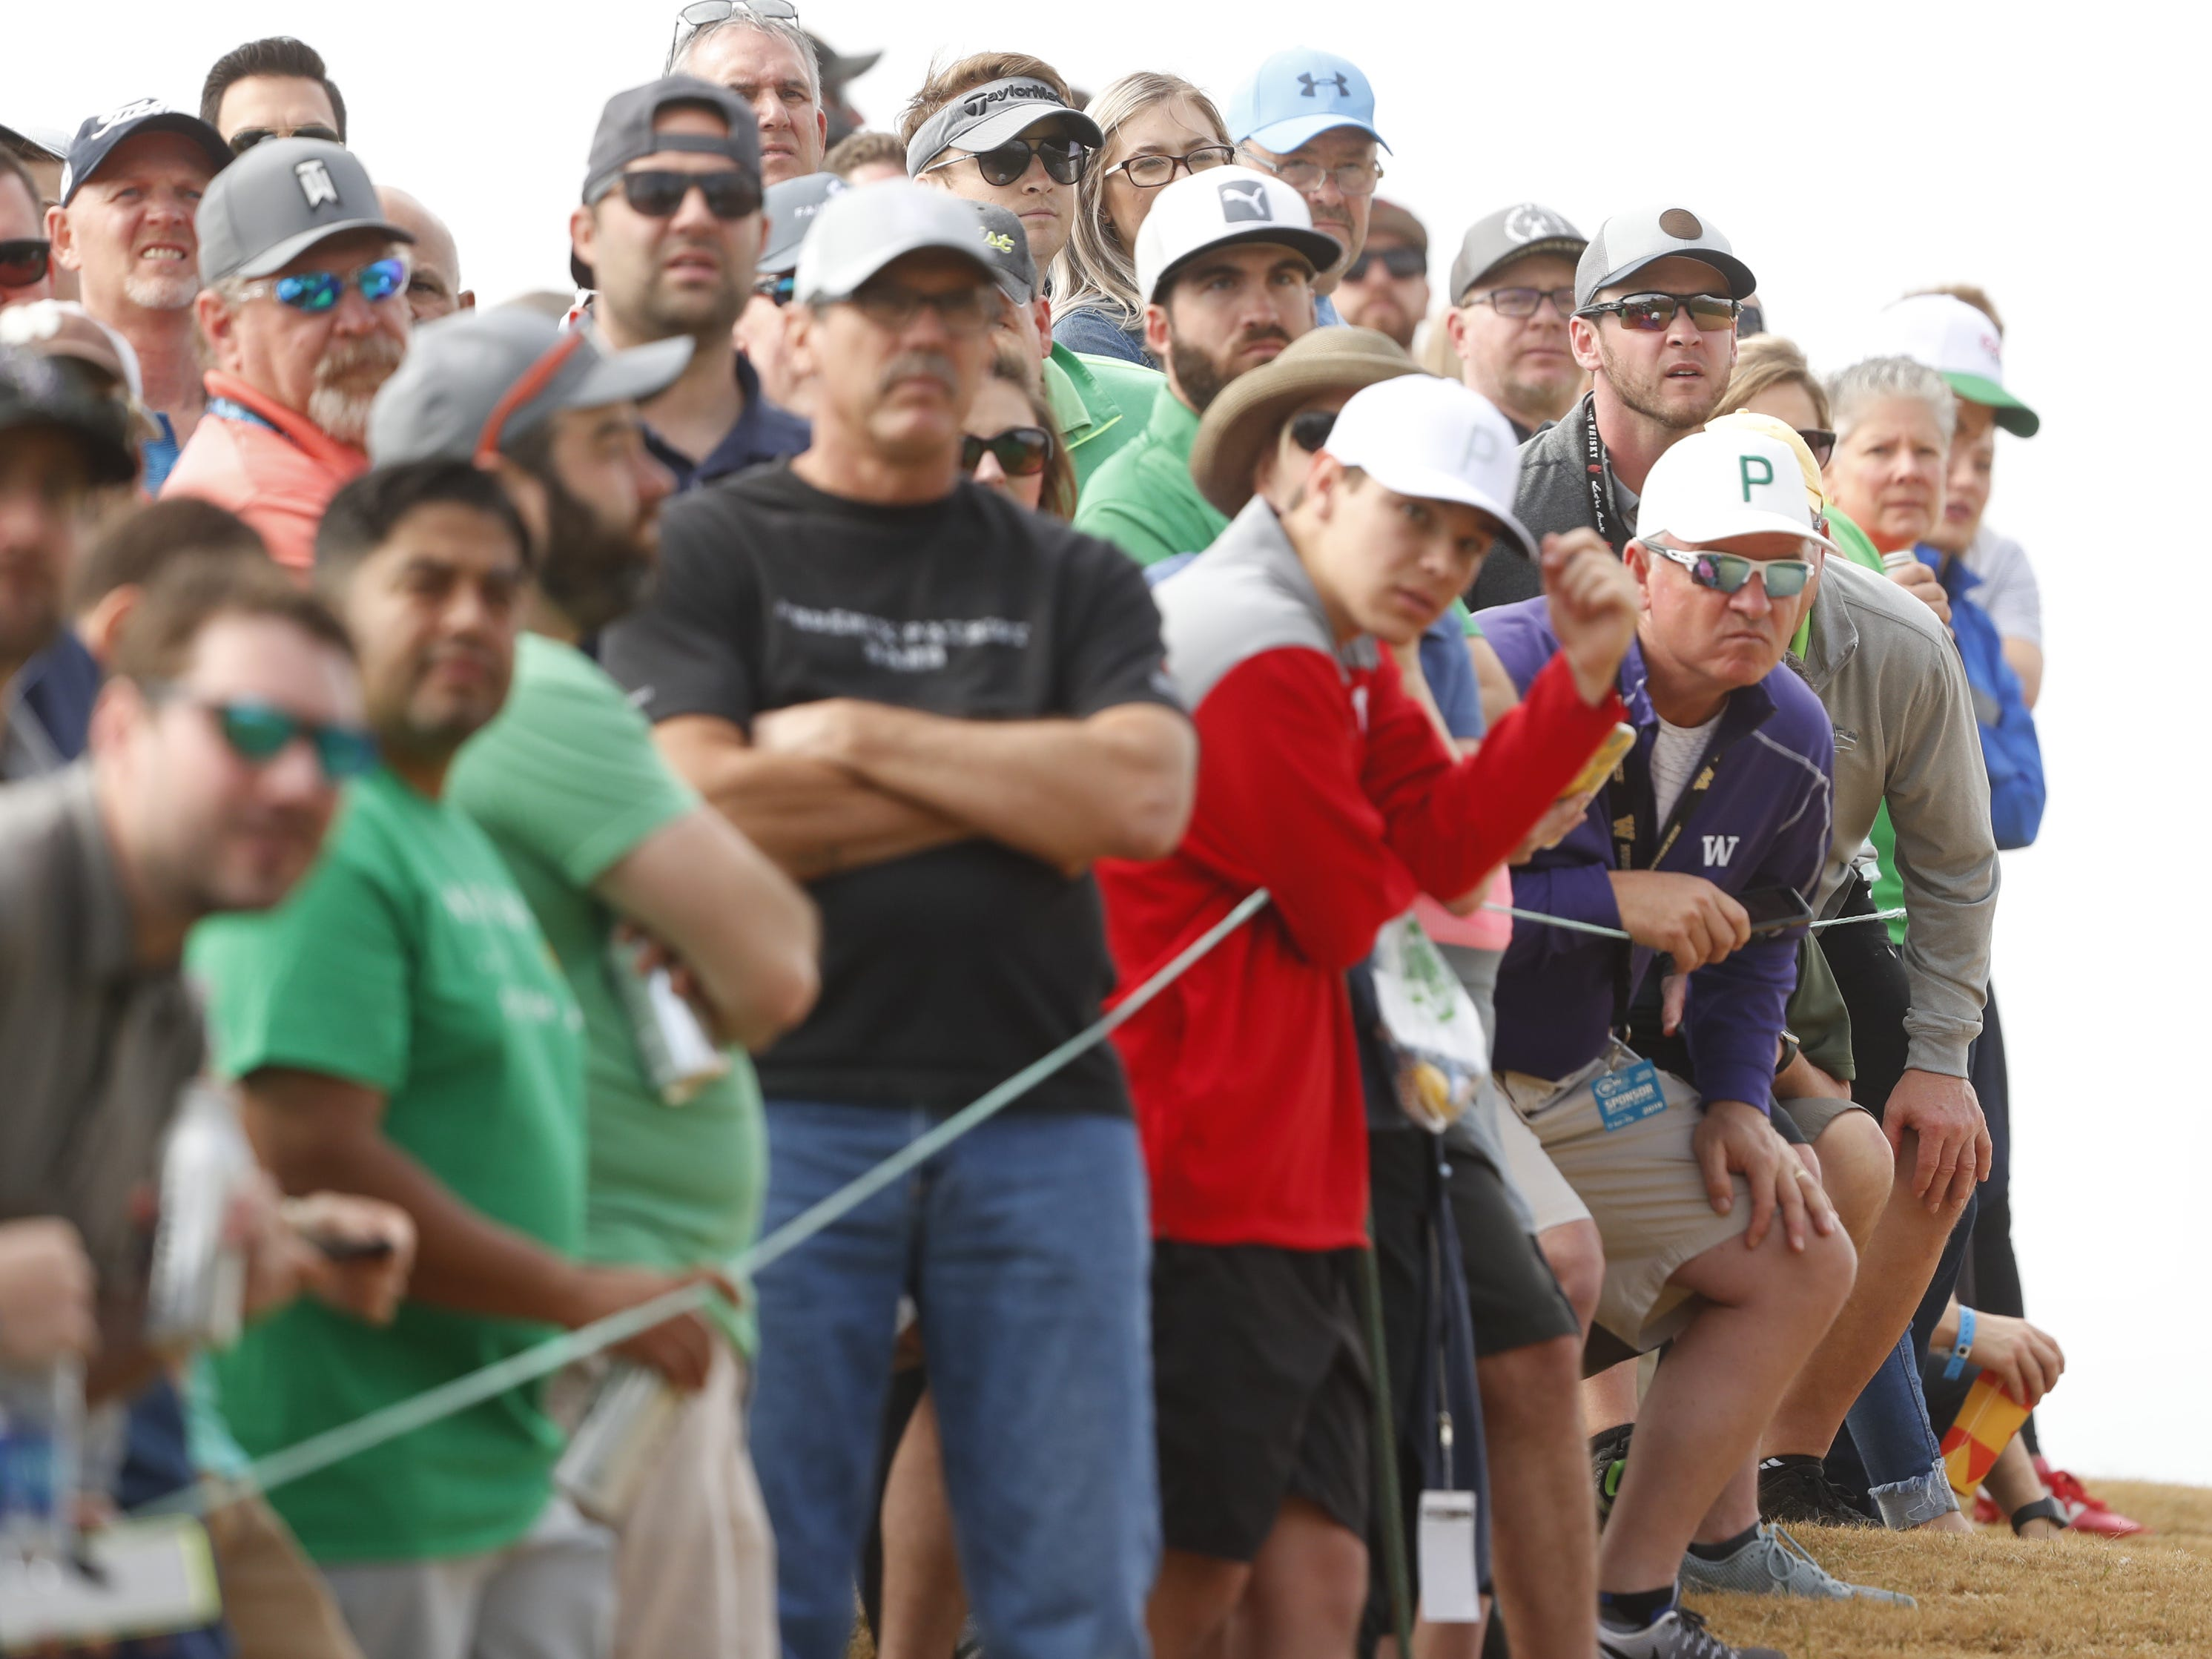 Fans watch Rickie Fowler's shot from the 9th hole fairway during the third round of the Waste Management Phoenix Open at TPC Scottsdale in Scottsdale, Ariz. on February 2, 2019.